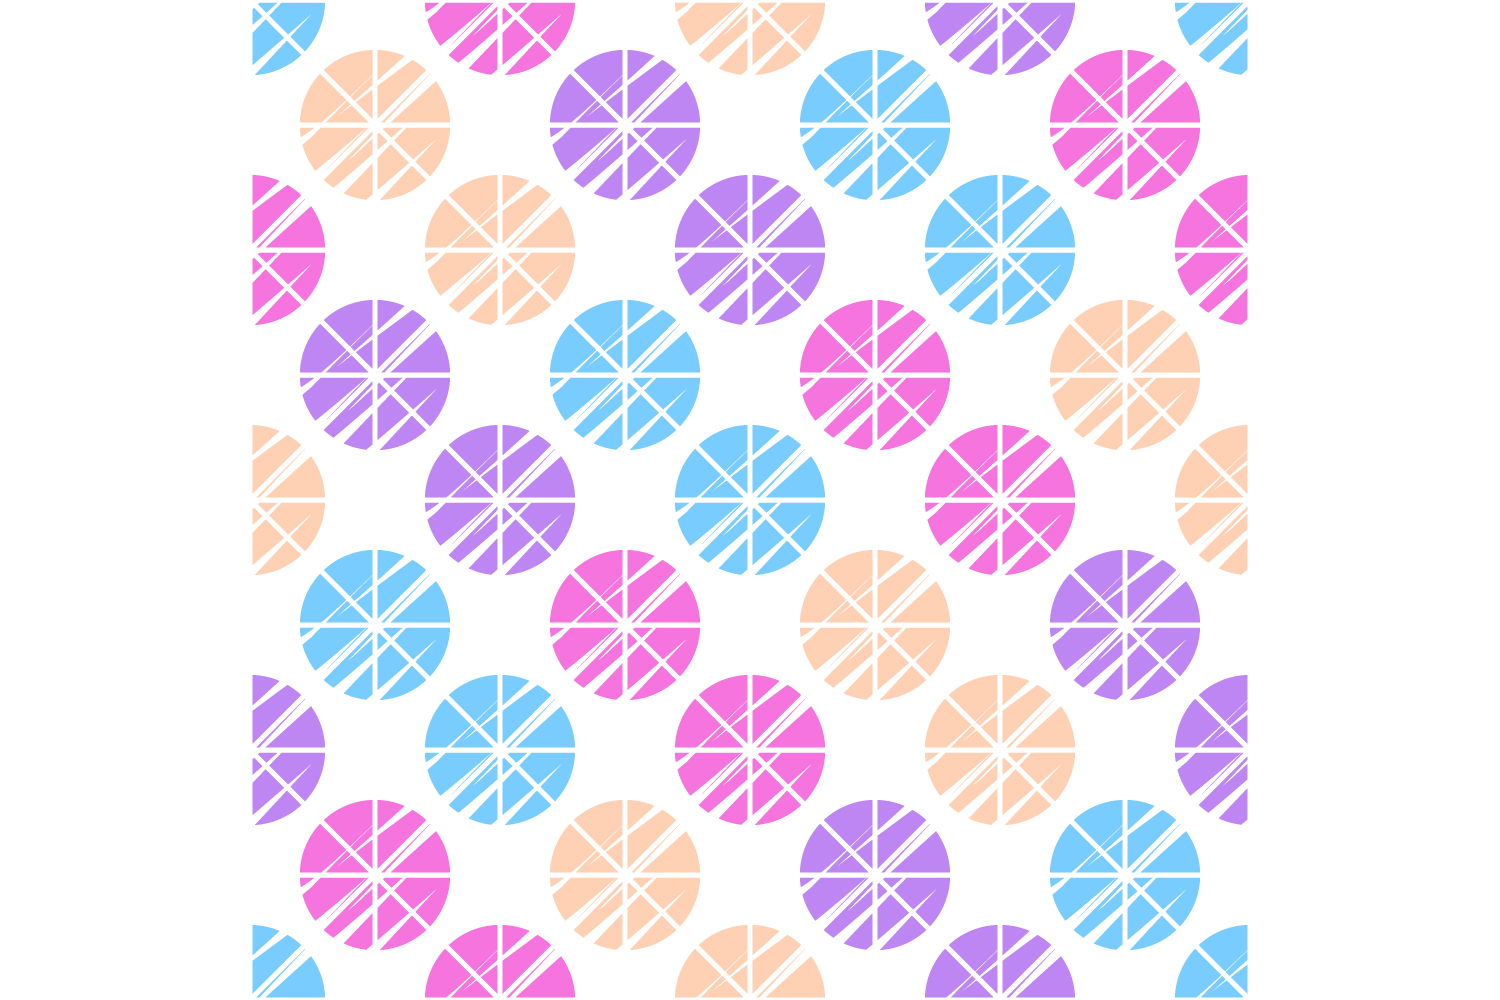 Polka dot ethnic ornament. Set of 10 seamless patterns. example image 1